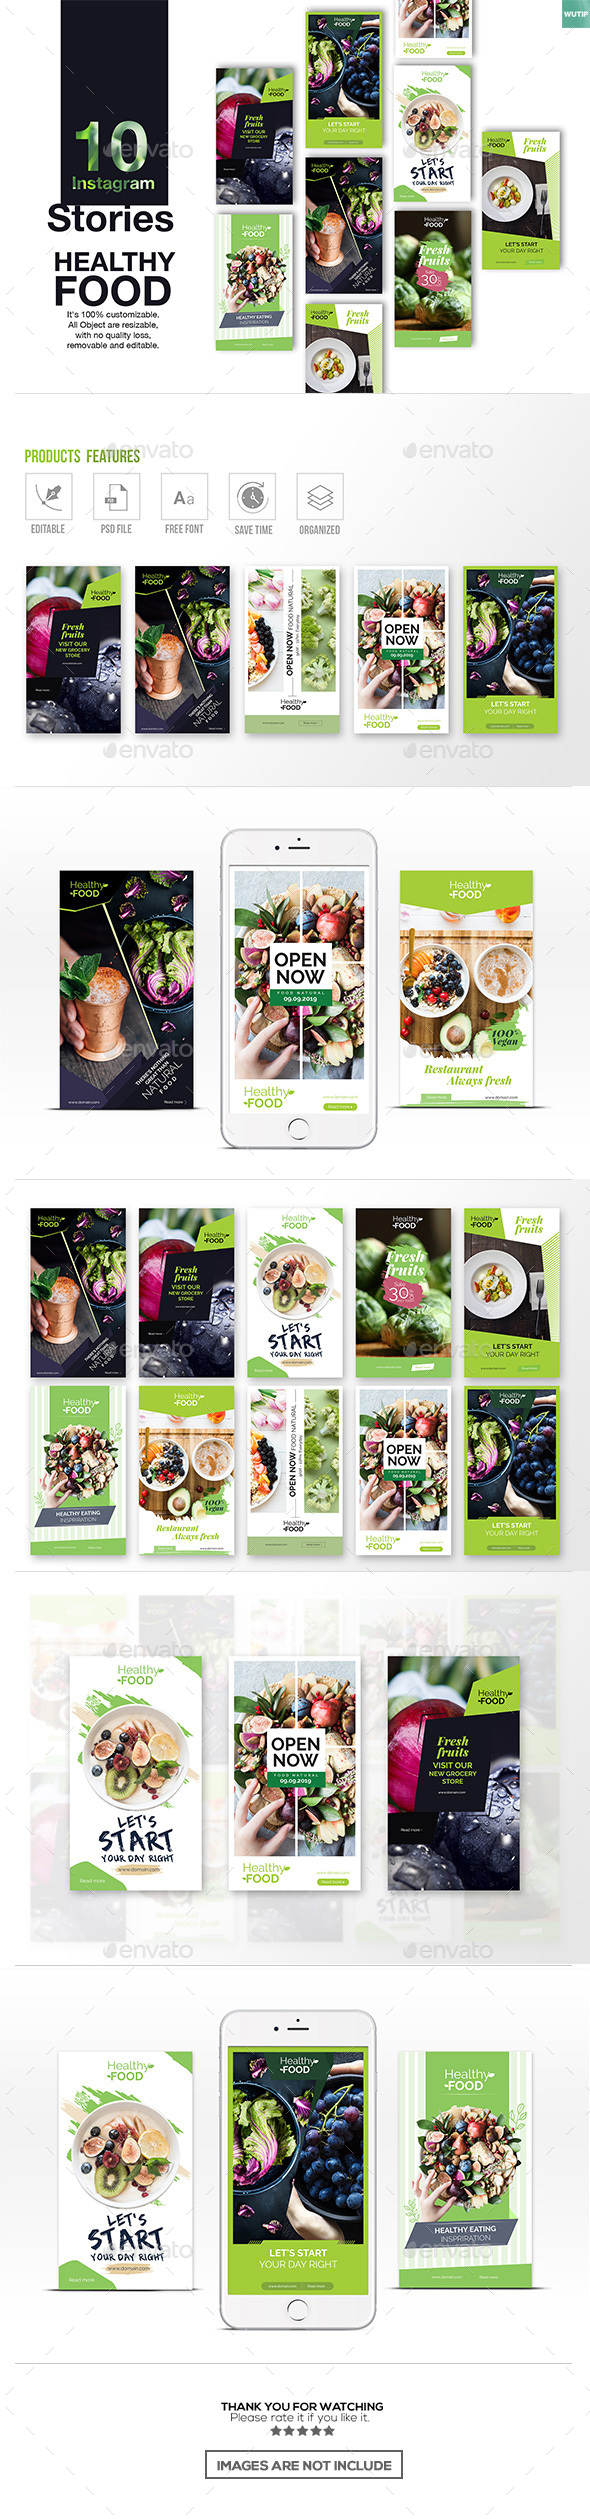 10 Instagram Stories - Healthy Food - Miscellaneous Social Media